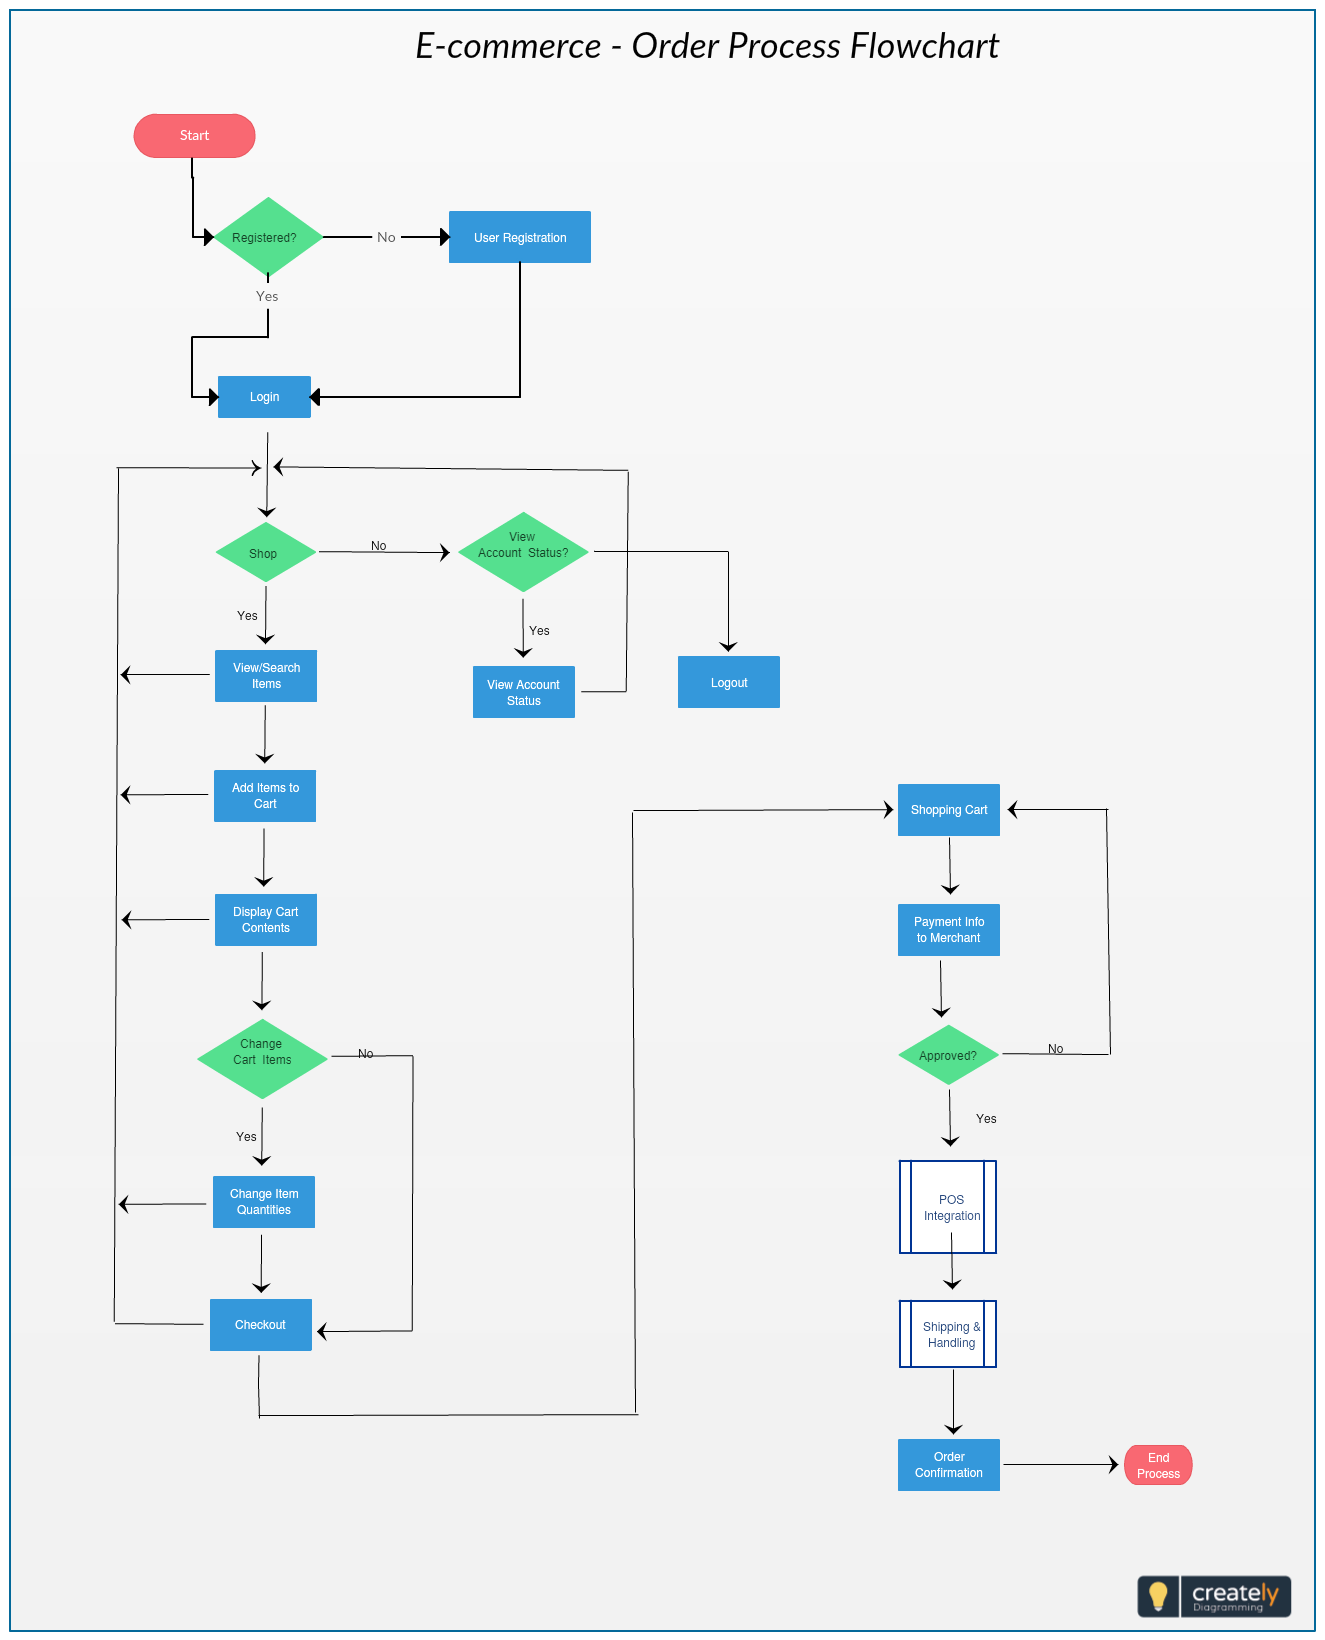 hight resolution of in order to maximise sales opportunities and stay cost competitive mapping out your ecommerce processes flowchart can help your business highlight key